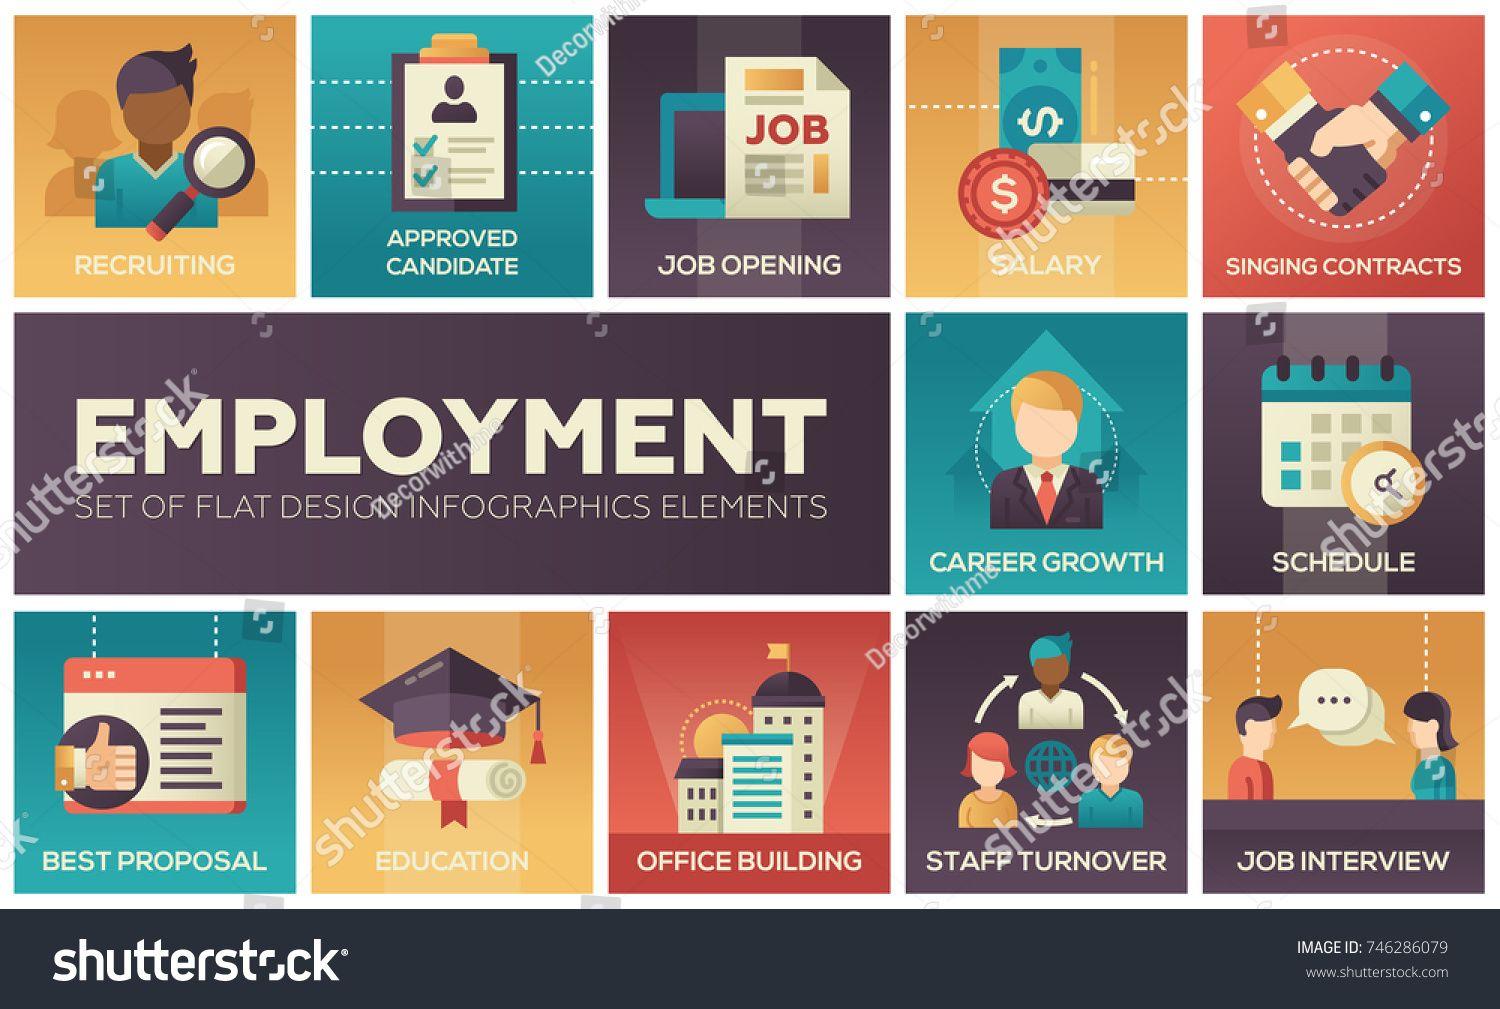 Employment Set Of Flat Design Infographics Elements Recruiting